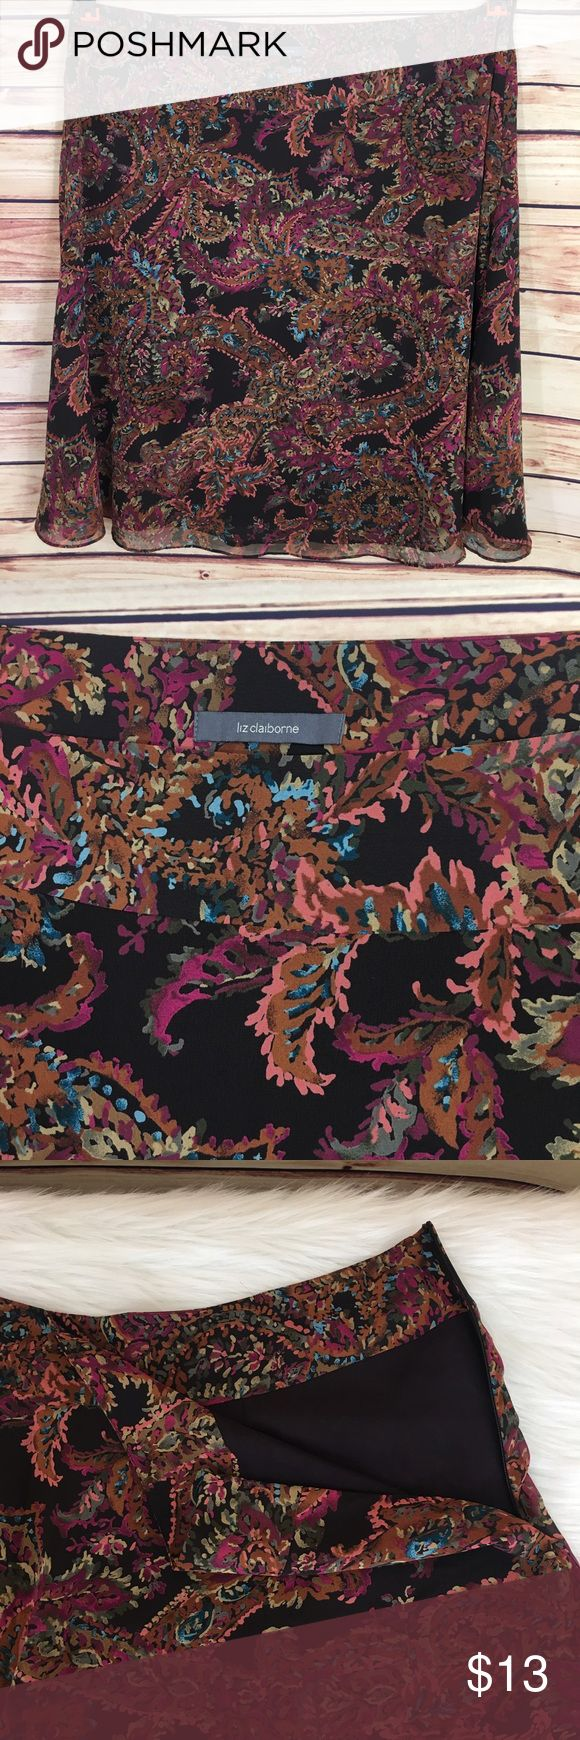 """✨ Liz Claiborne plus size skirt ✨Newly listed items are priced to move.. please help me clear out my actual closet 😉 Brand: Liz Claiborne Size: 22 Type: plus size skirt  Details: vibrant paisley like print, side zipper closure, lined  Waist measurement (laying flat): 23"""" Length: 28.5"""" Condition: preloved, excellent condition  ✨Build a bundle with all your likes and use the automatic bundle discount -or- make me a bundle offer✨ Liz Claiborne Skirts A-Line or Full"""